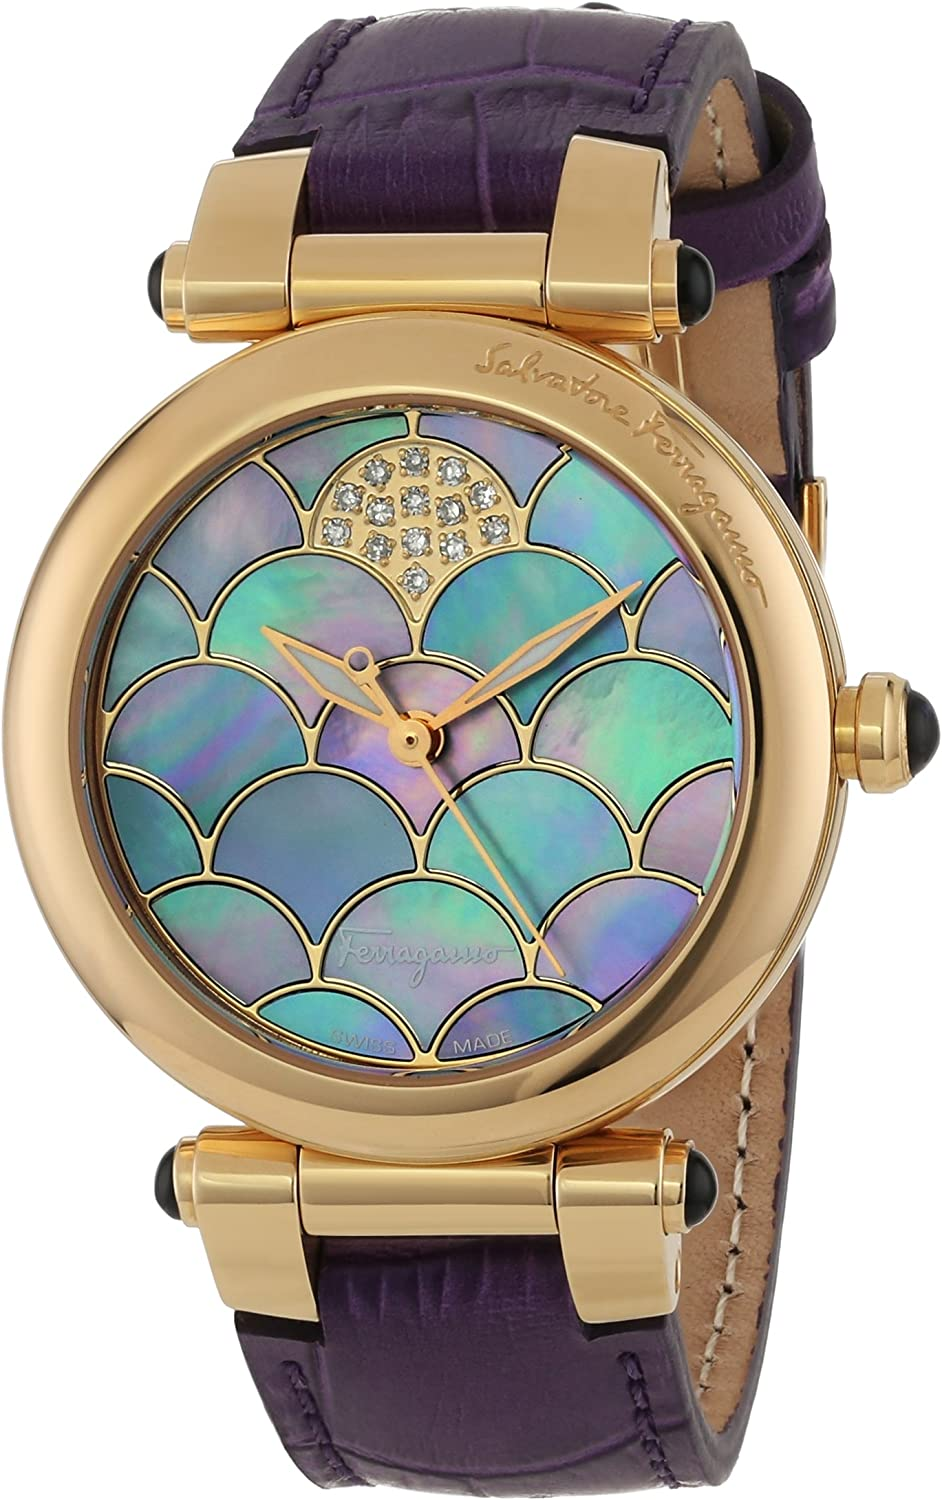 Salvatore Ferragamo Women's Idillio Diamond-Accented Rose Gold Ion-Plated Watch with Leather Band